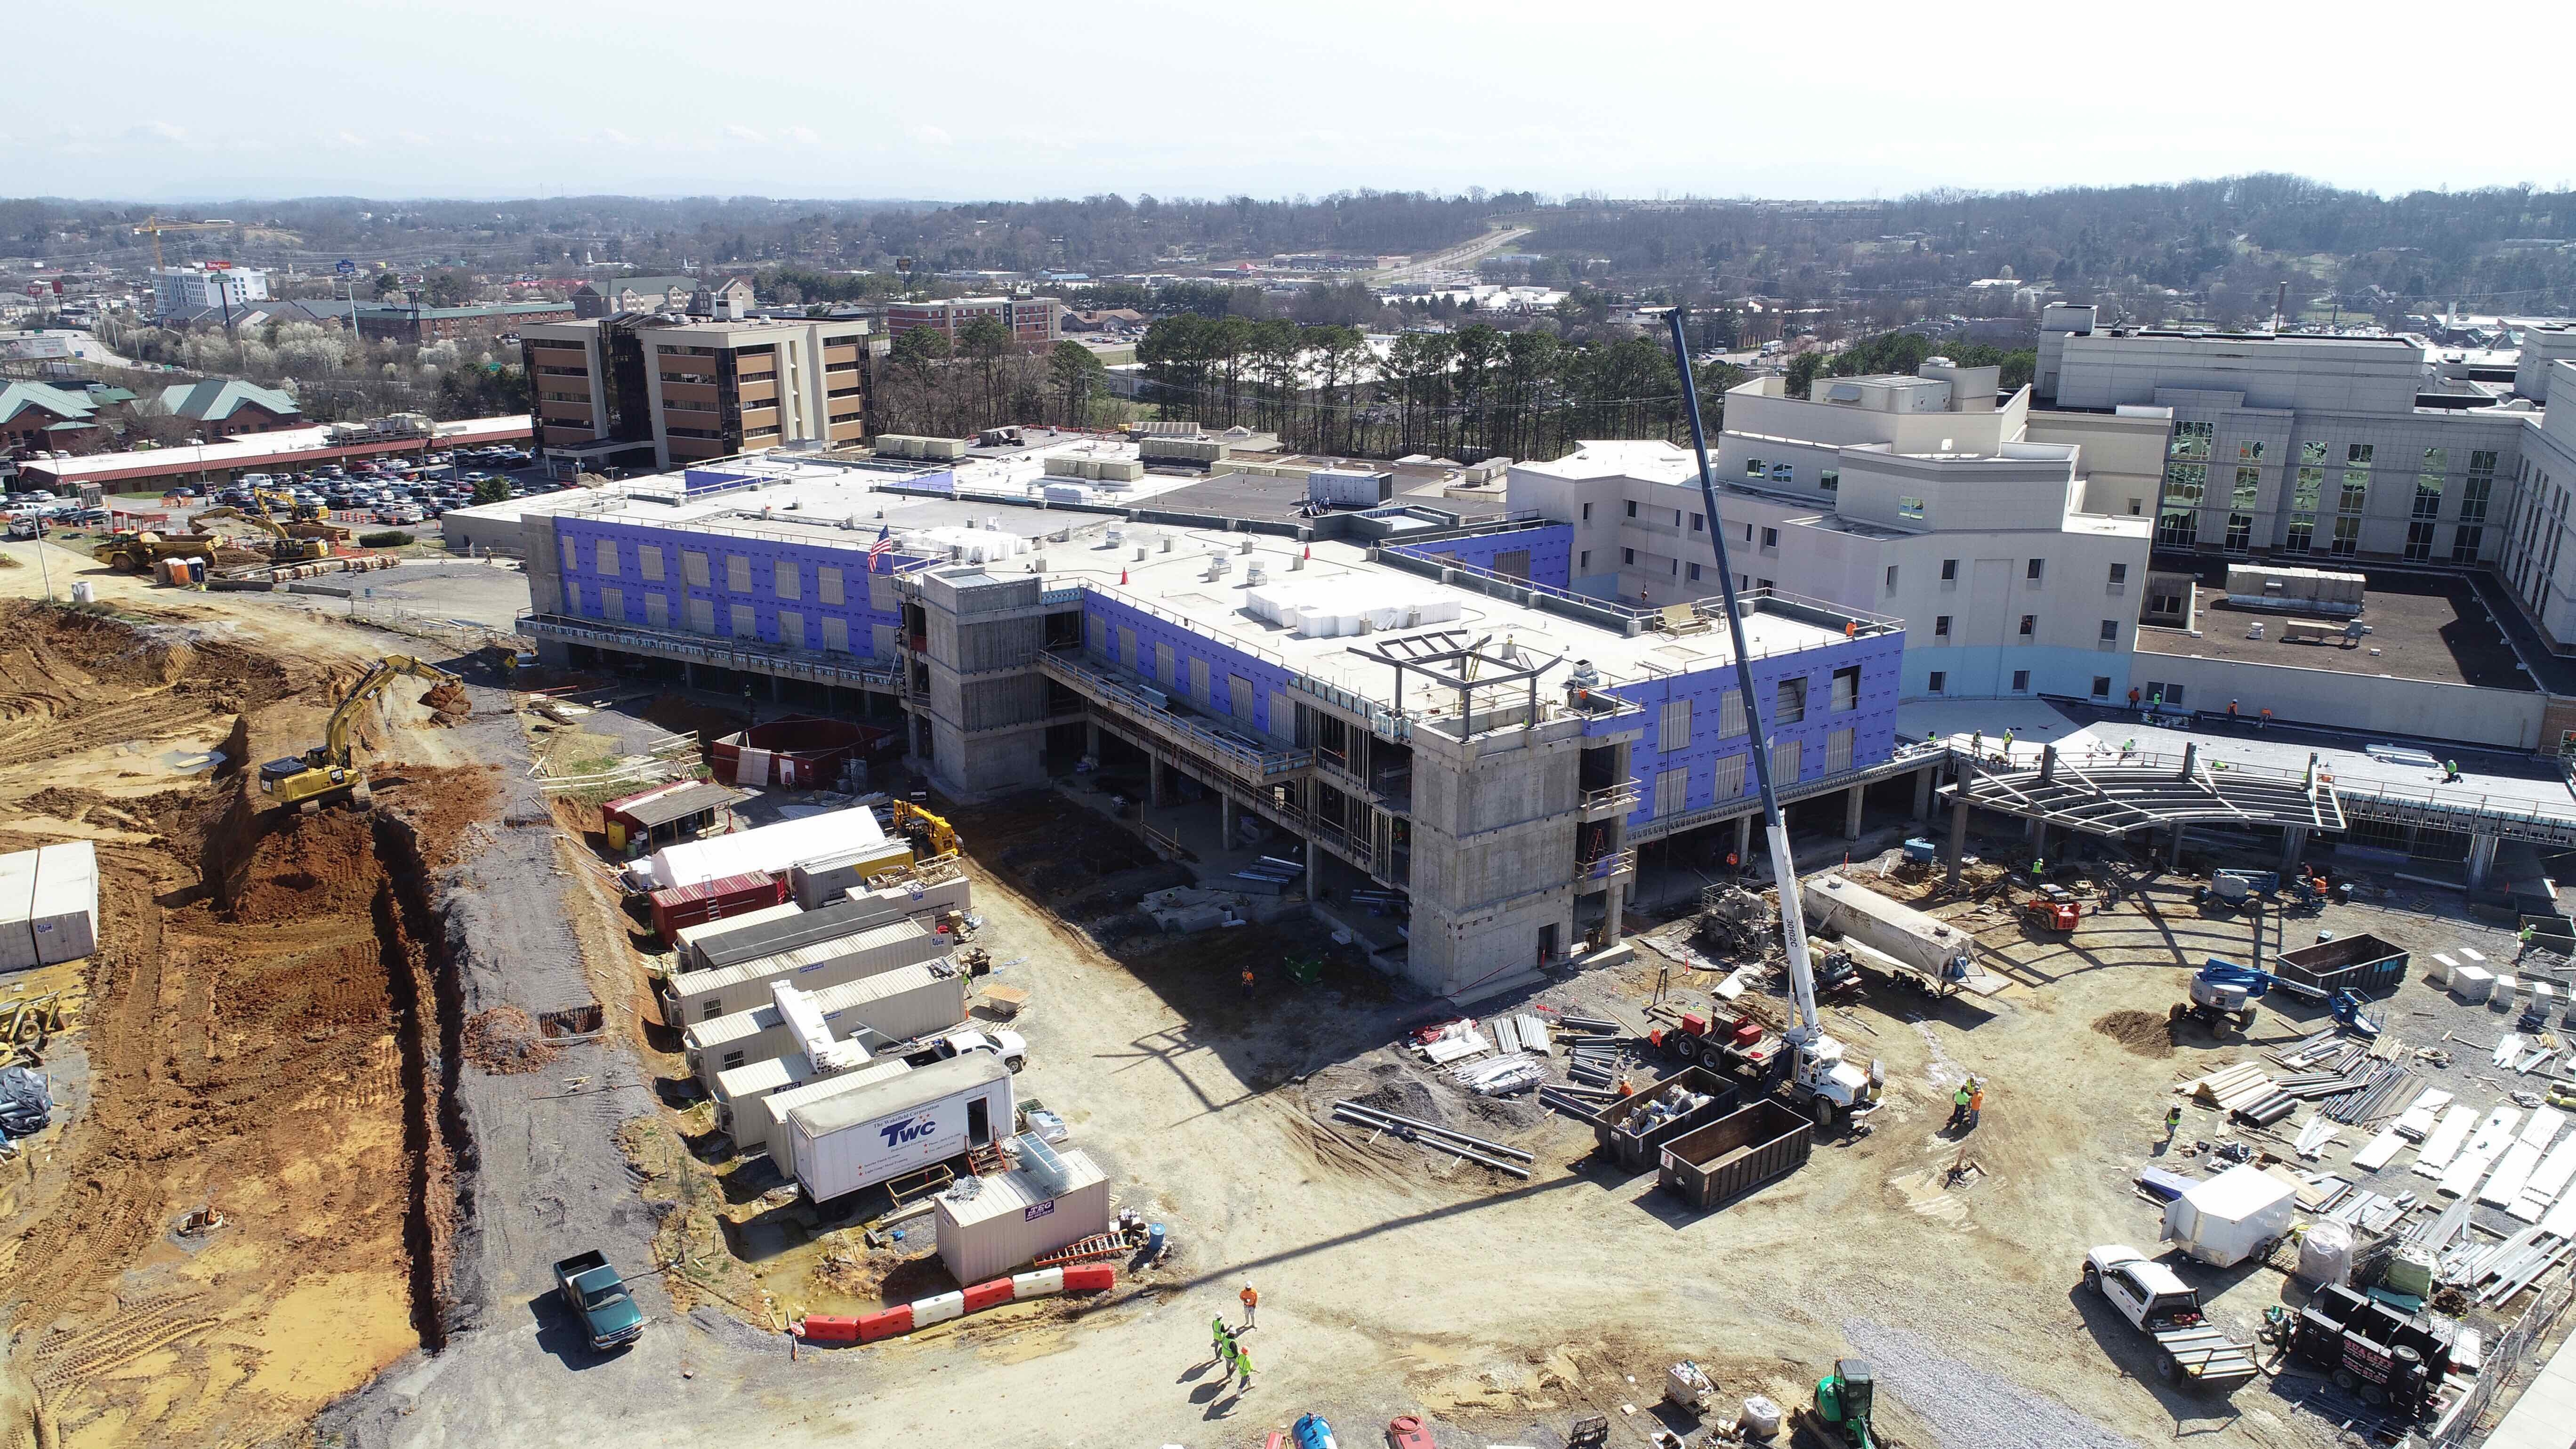 Taken Feb 27 of new tower construction site at Parkwest Medical Center.